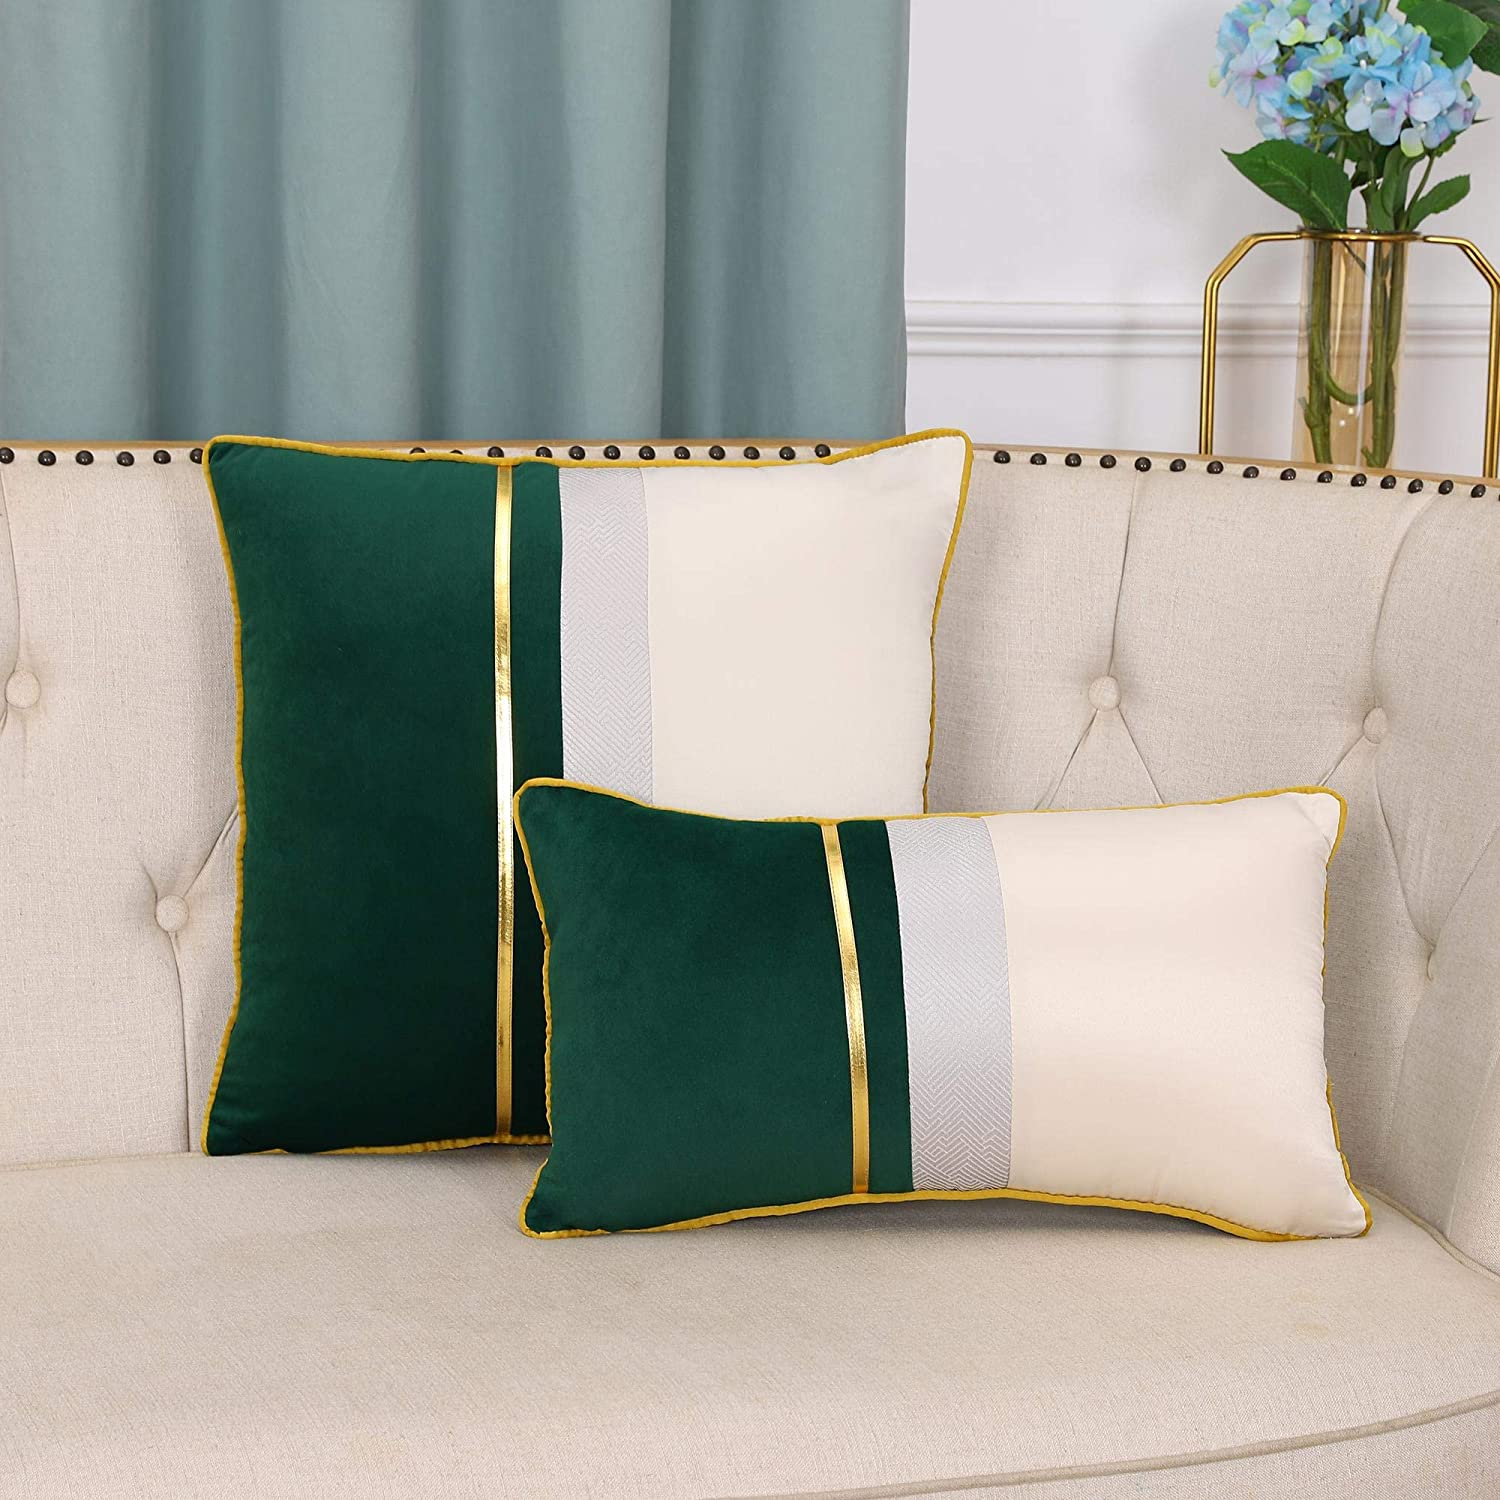 EECCA 2-Packs Gold Leather Striped Max 47% OFF Case Velvet Cushion Patchwork Genuine